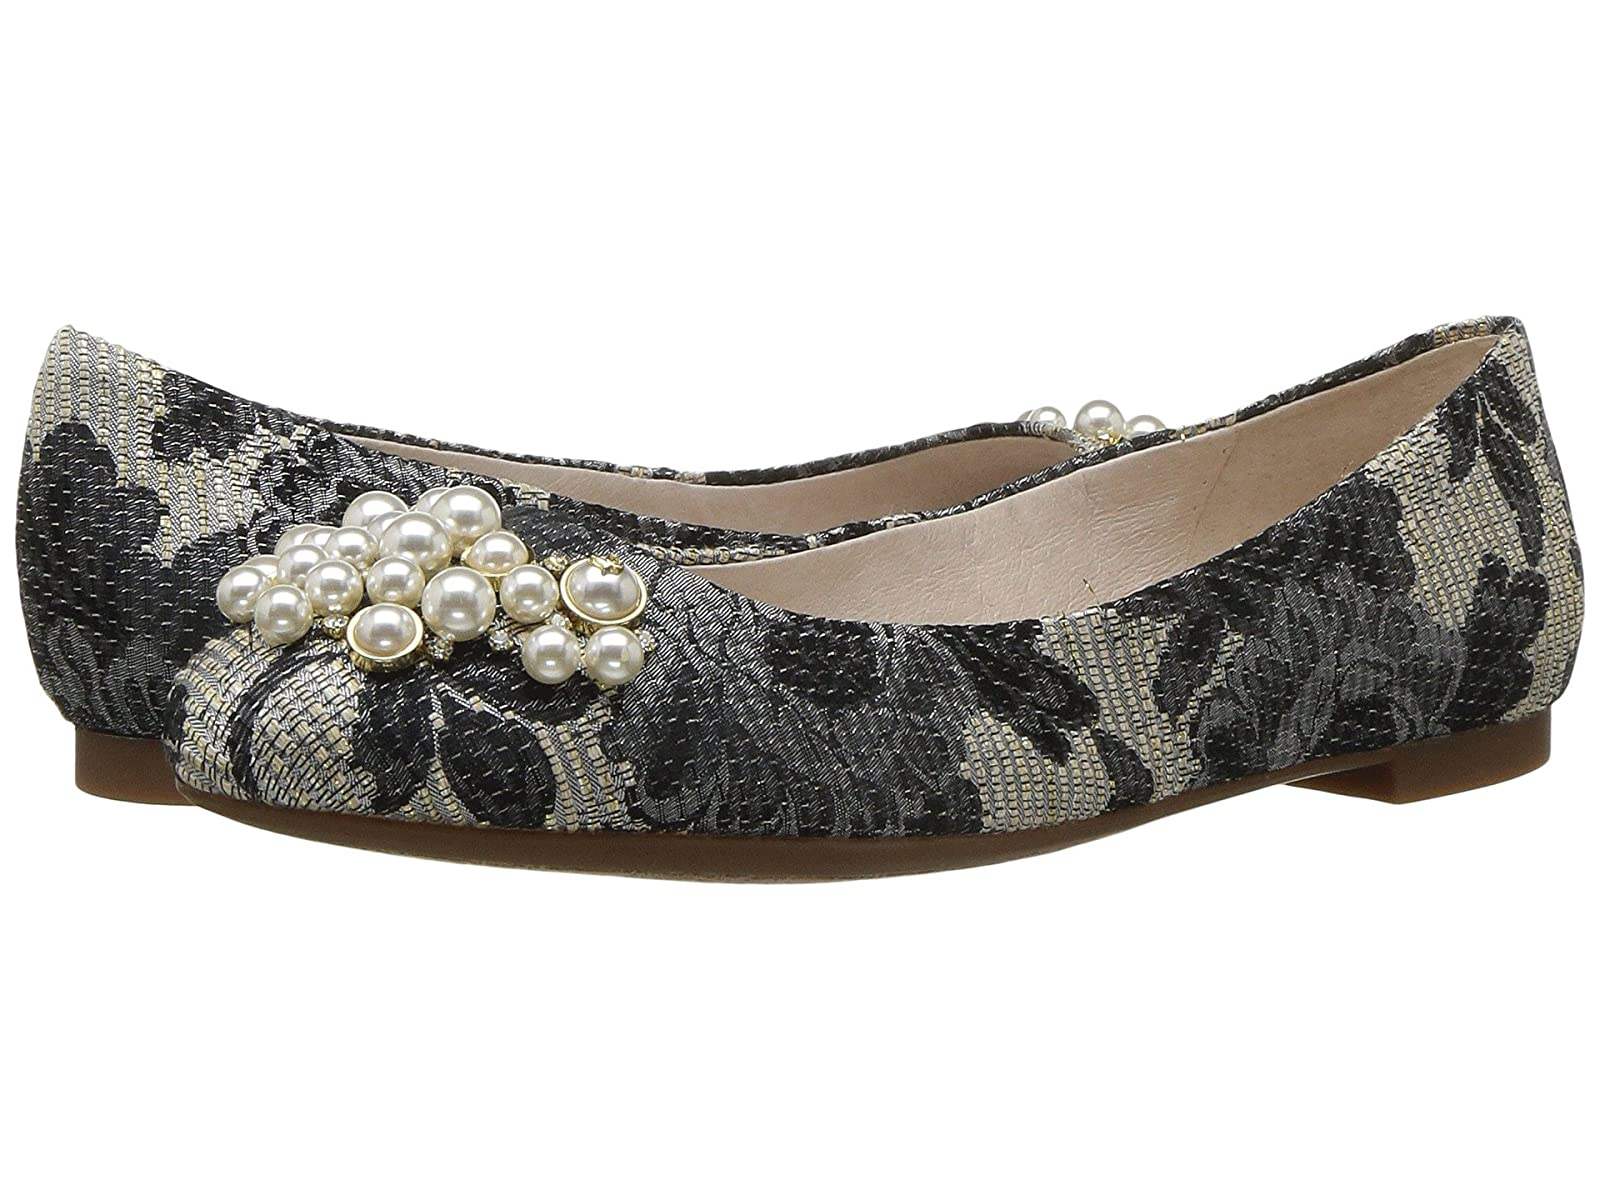 Louise et Cie ArellaCheap and distinctive eye-catching shoes